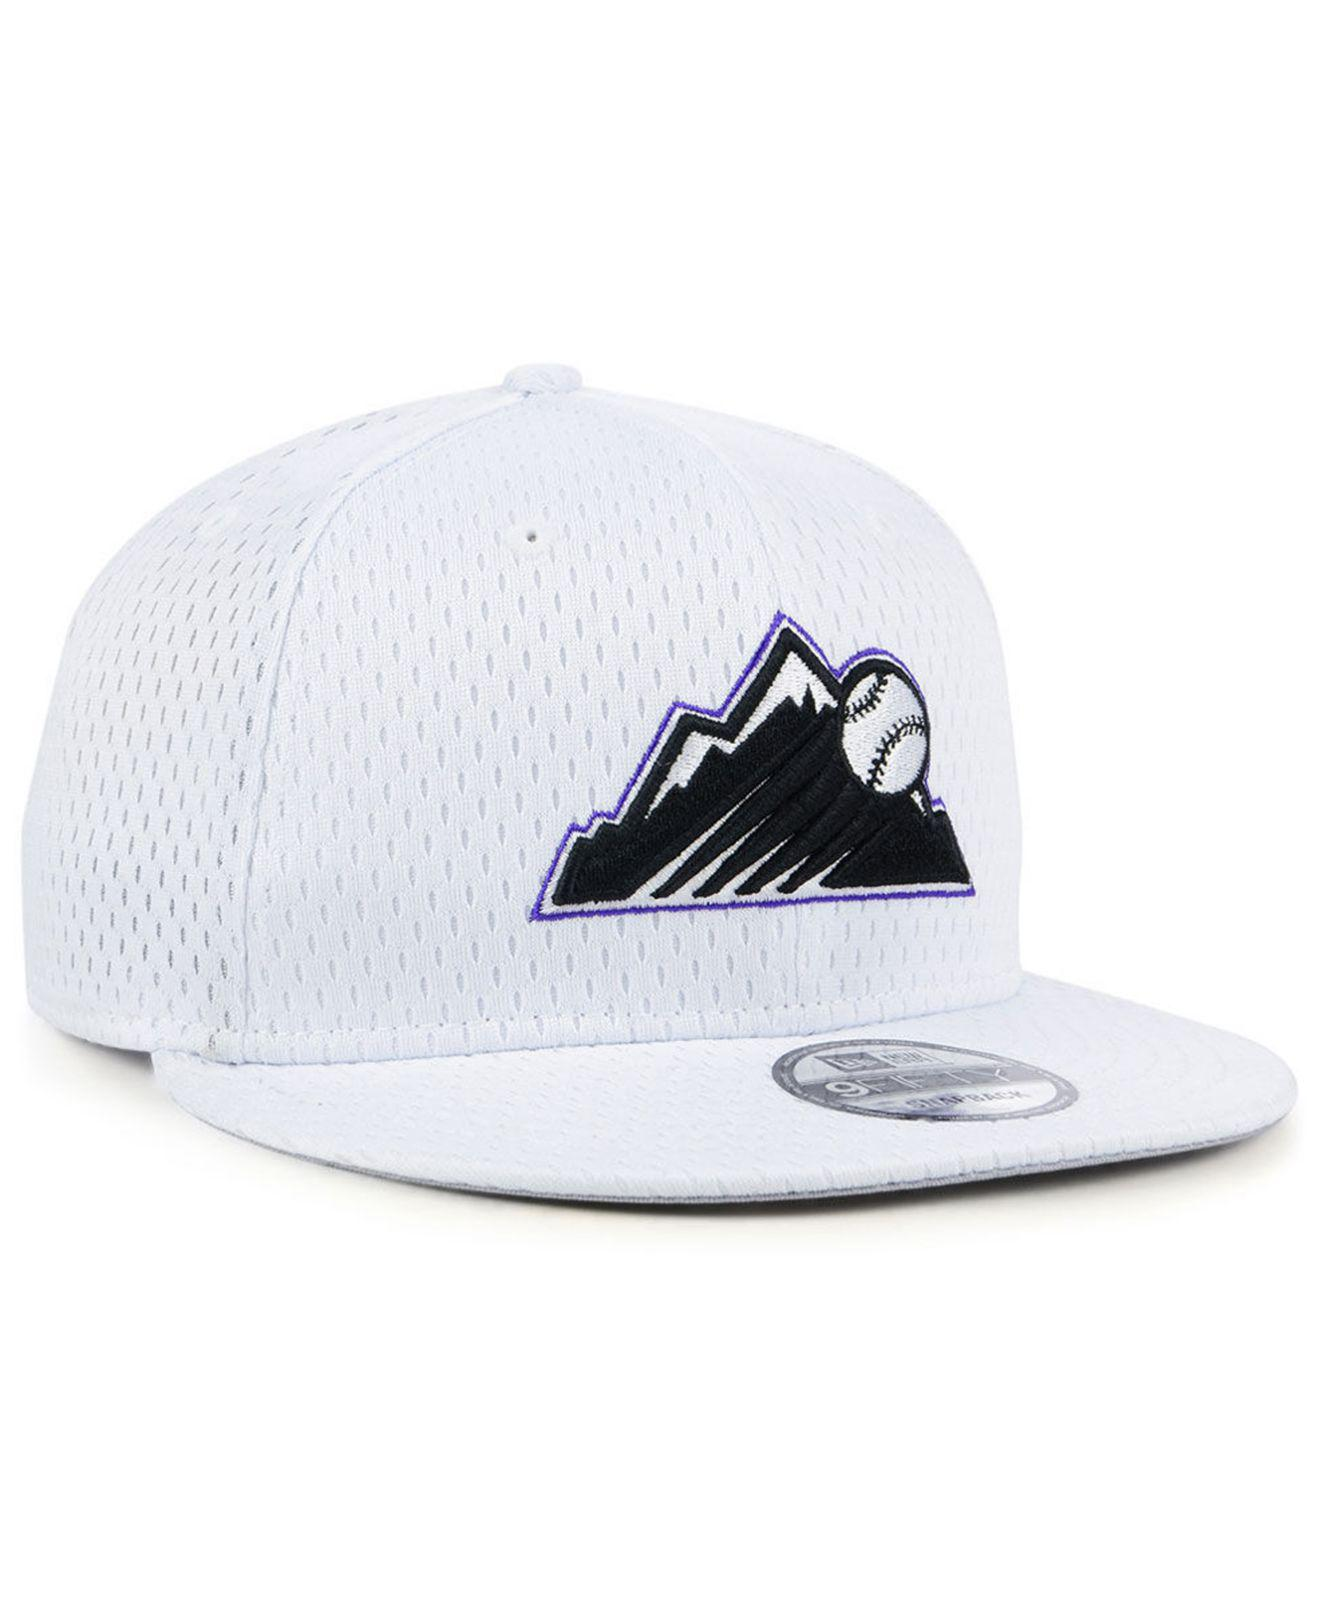 on sale 38e9f 80c01 low cost mens colorado rockies new era black 2019 batting practice 9twenty  adjustable hat 9d3ae c80ac  australia lyst ktz colorado rockies batting  practice ...